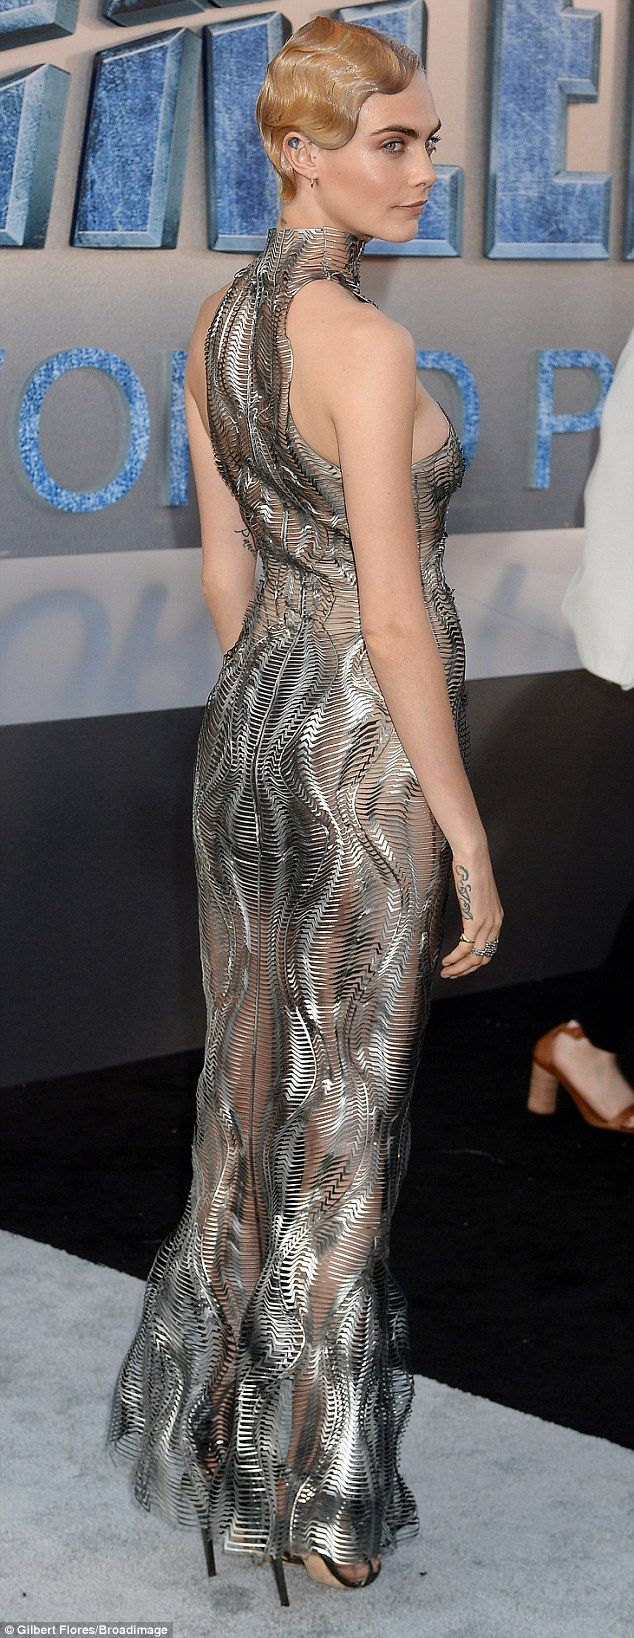 Model figure: The patterned metallic-looking dress molded itself to the British actress's body  and a split at the front showed off her lean legs